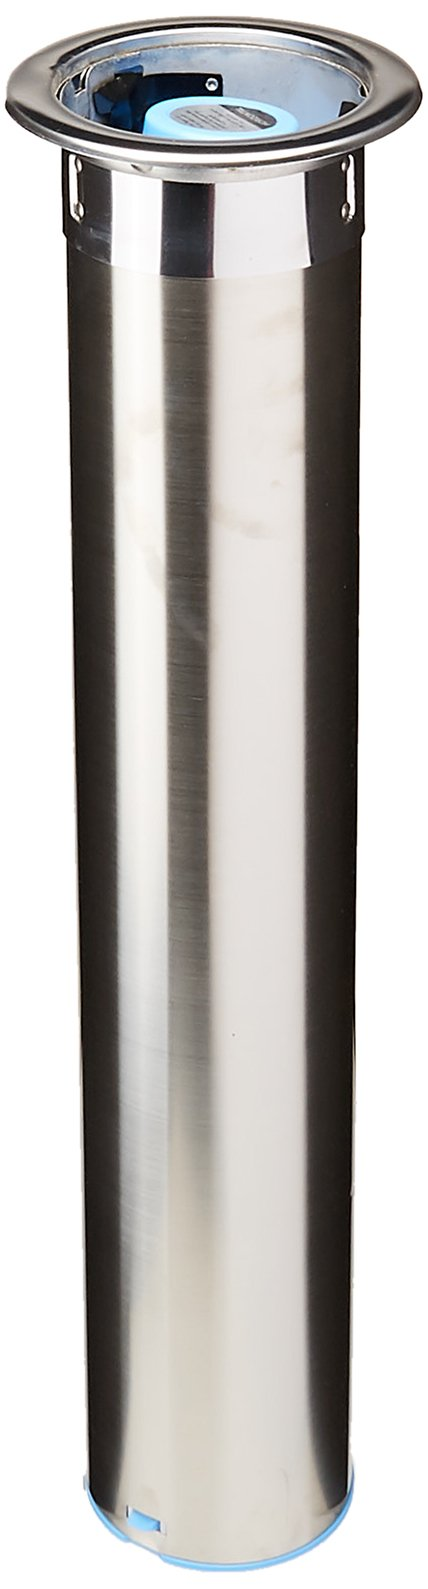 San Jamar C3400C Stainless Steel In-Counter Horizontal Cup Dispenser, Fits 12oz to 24oz Cup Size, 23-1/2'' Tube Length